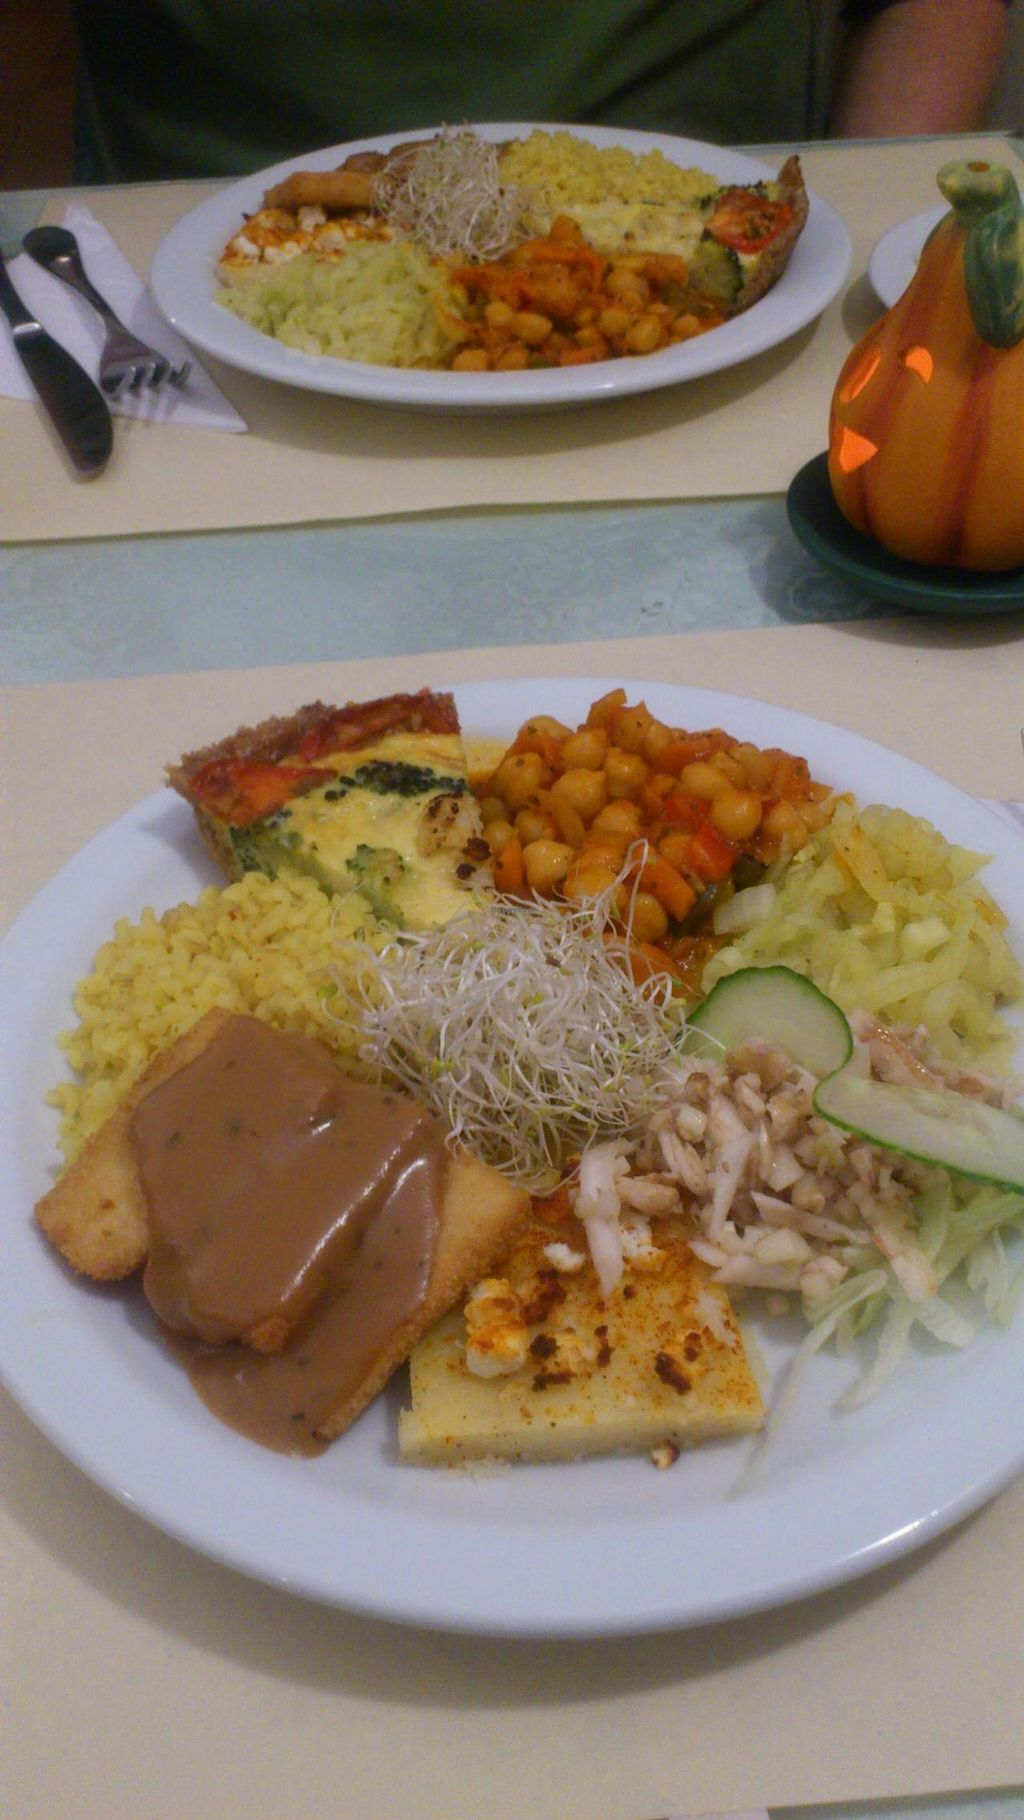 "Photo of Grenoble  by <a href=""/members/profile/vagabond%20baker"">vagabond baker</a> <br/>Grenoble, Sint Niklaas: small plate, big plate at back (salad comes on the side to make more room on plate for more food!) <br/> November 21, 2014  - <a href='/contact/abuse/image/5024/86146'>Report</a>"